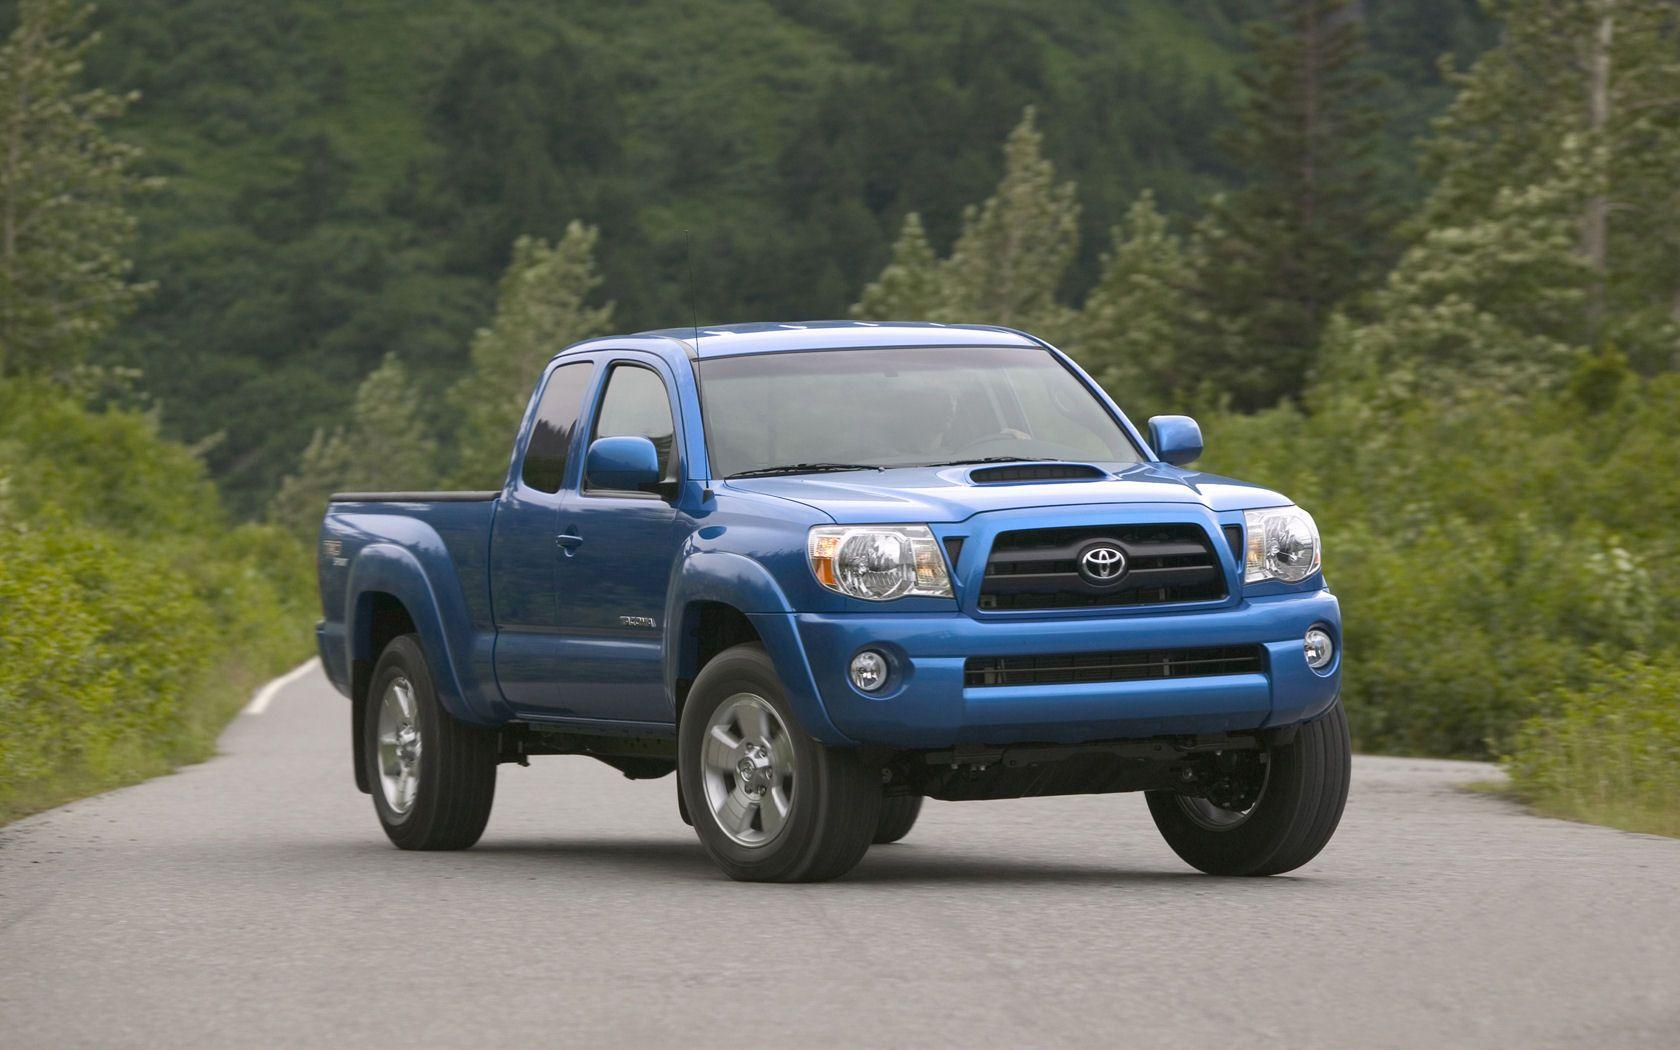 Toyota Tacoma, PreRunner, AWD, V6 - Free Widescreen Wallpaper ...